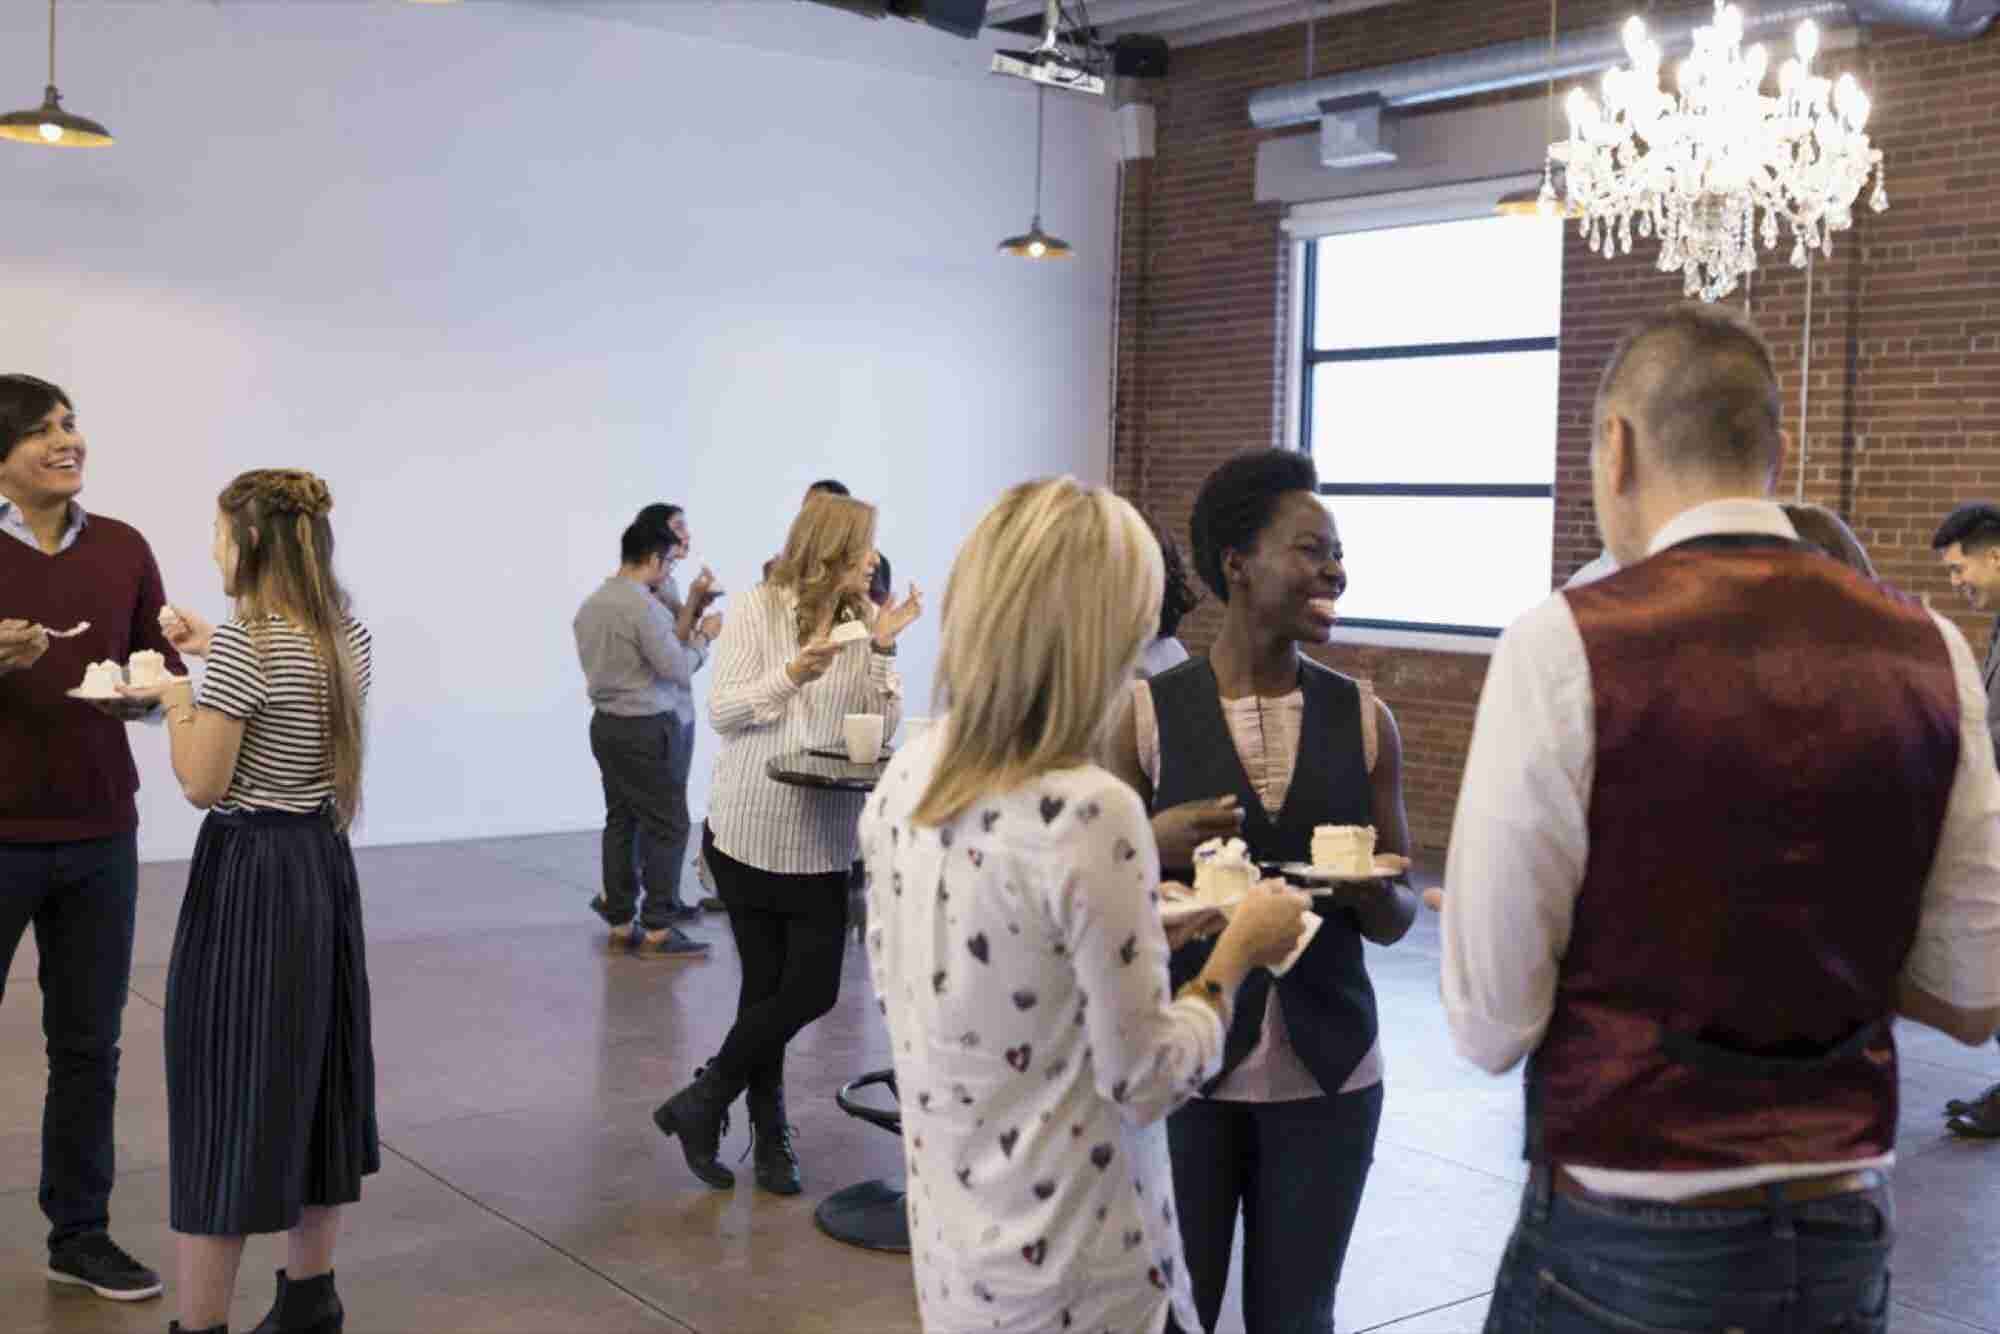 3 Questions That Will Determine the Best Networking Events for You